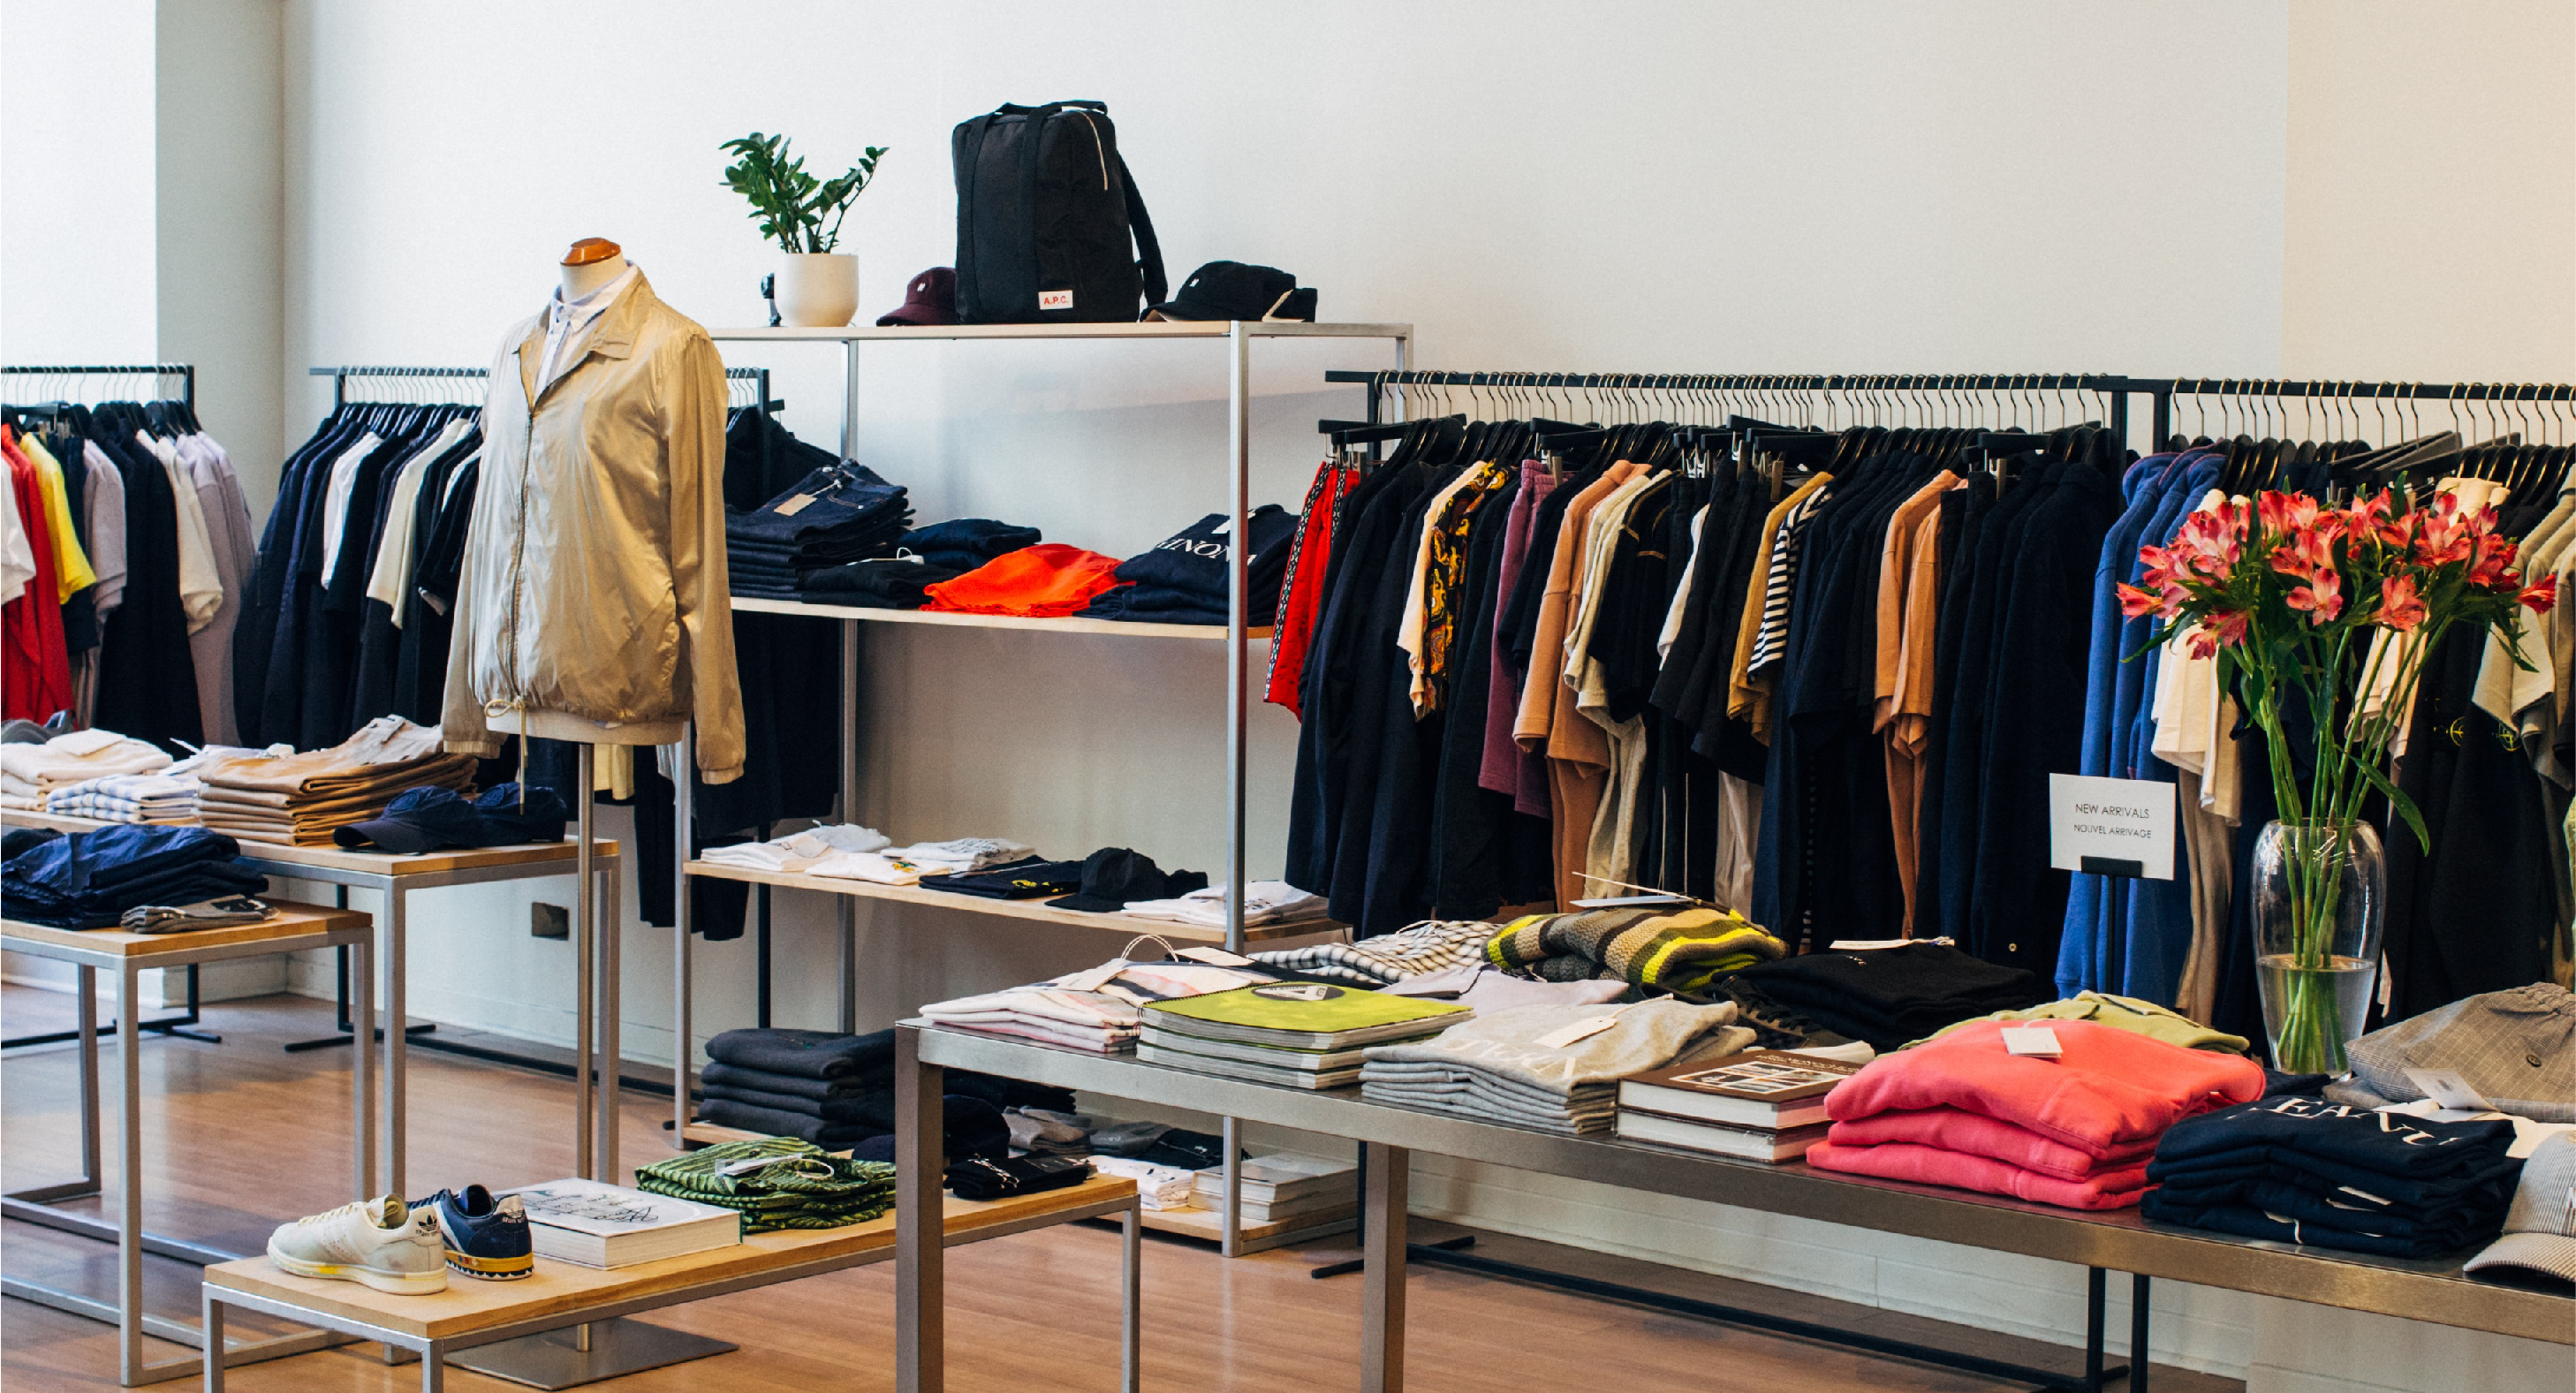 How To Run a Successful Clothing Retail Store